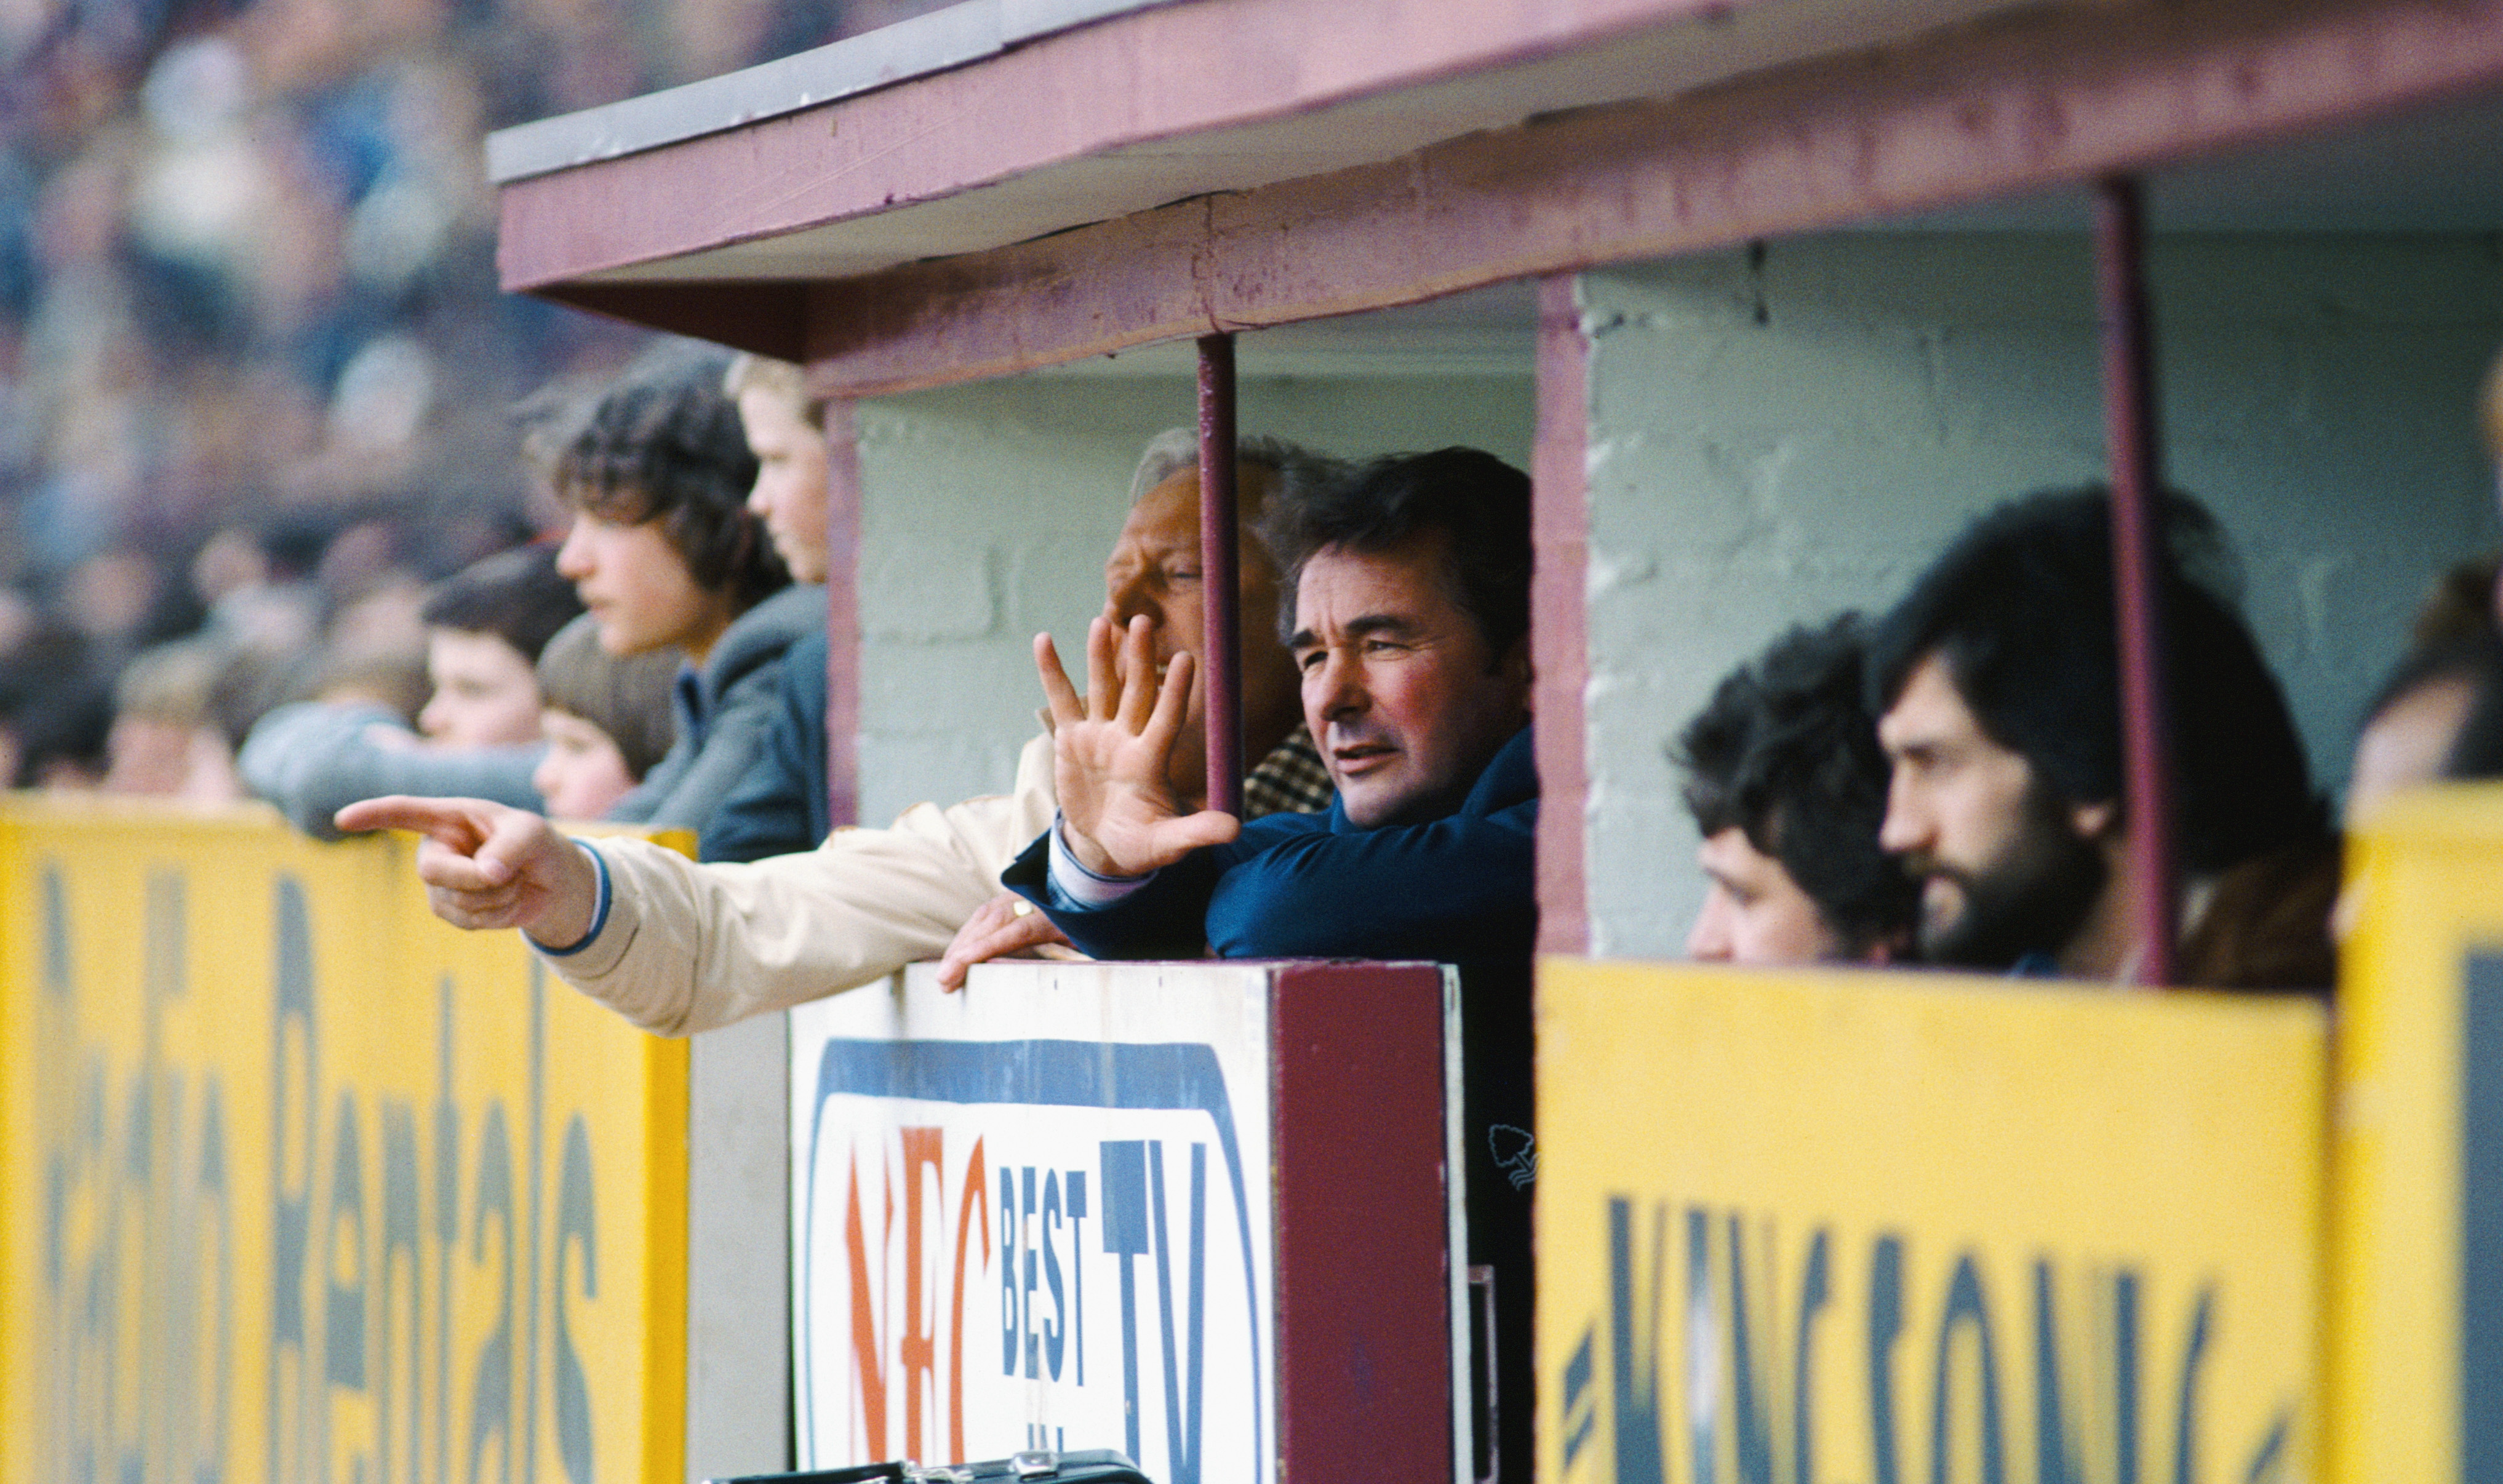 BIRMINGHAM, UNITED KINGDOM - APRIL 05: Nottingham Forest manager Brian Clough (c) and assistant Peter Taylor (left, partially obscured) react during a League Division One Match between Aston Villa and Nottingham Forest at Villa Park, on April 5, 1980 in Birmingham, England. (Photo by Duncan Raban/Getty Images) (Photo by Getty Images/Getty Images)